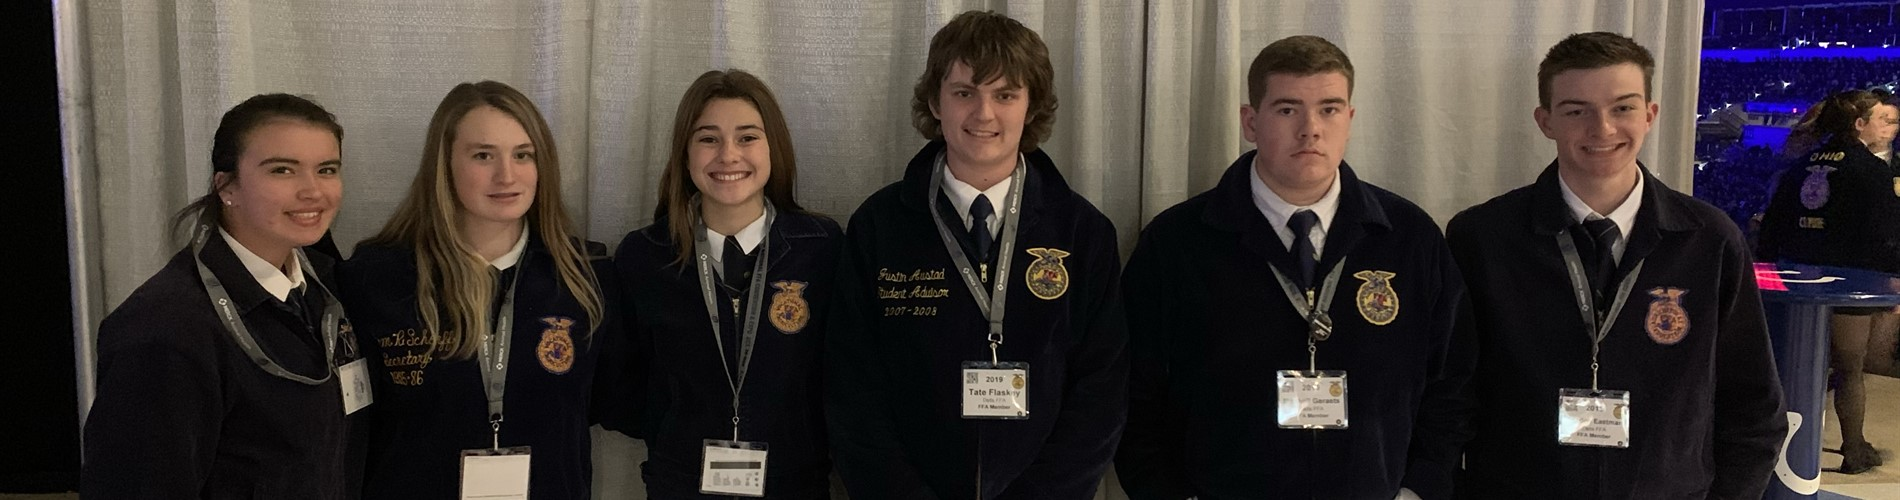 Pictured are the National FFA Convention attendees in Indianapolis, IN.